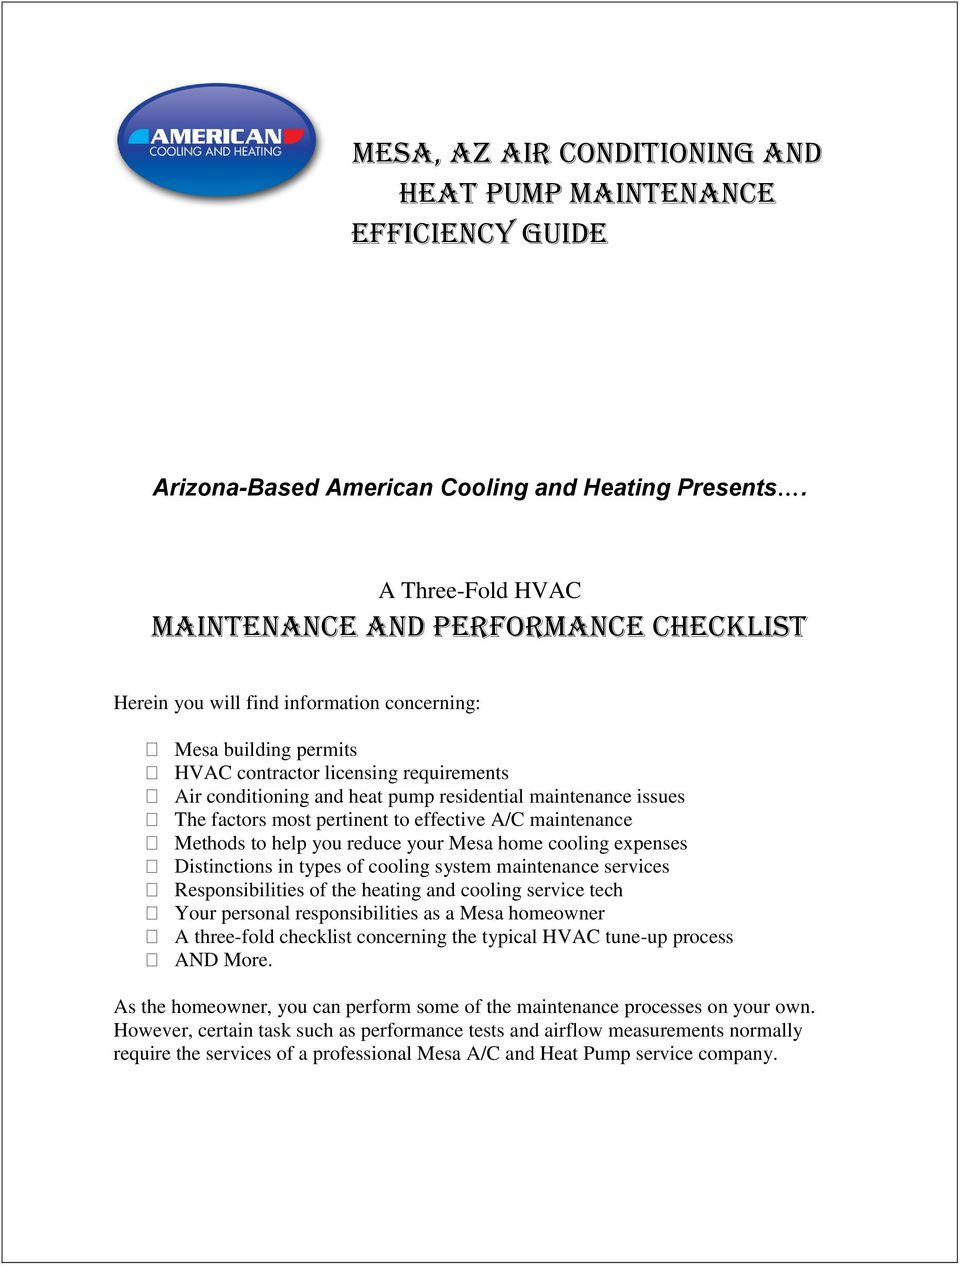 residential maintenance issues The factors most pertinent to effective A/C maintenance Methods to help you reduce your Mesa home cooling expenses Distinctions in types of cooling system maintenance